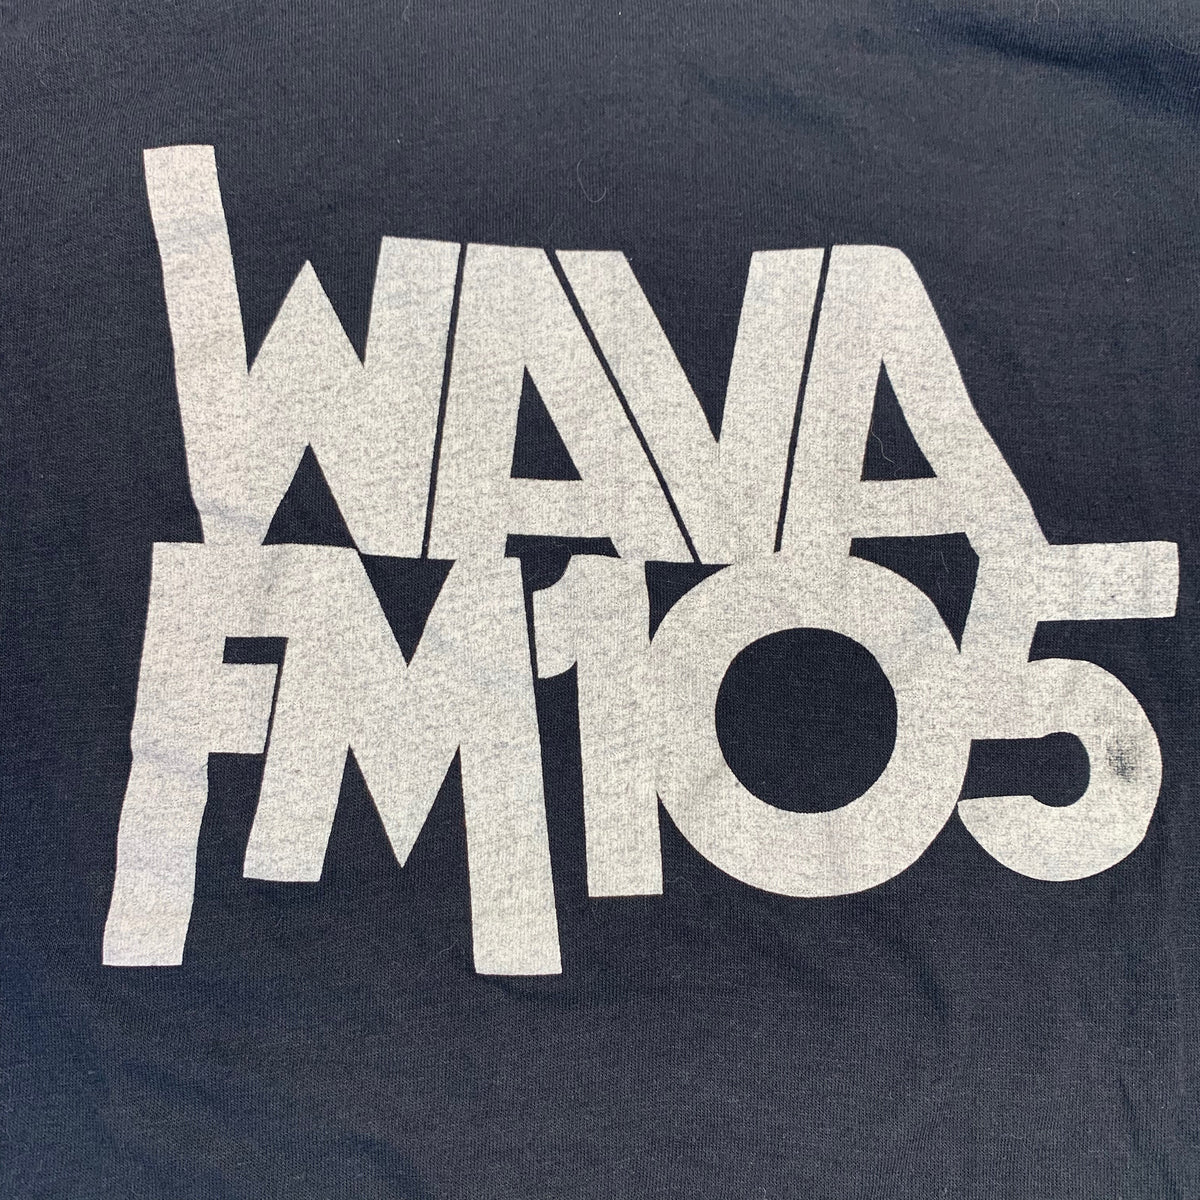 "Vintage The Beatles ""WAVA FM"" T-Shirt"